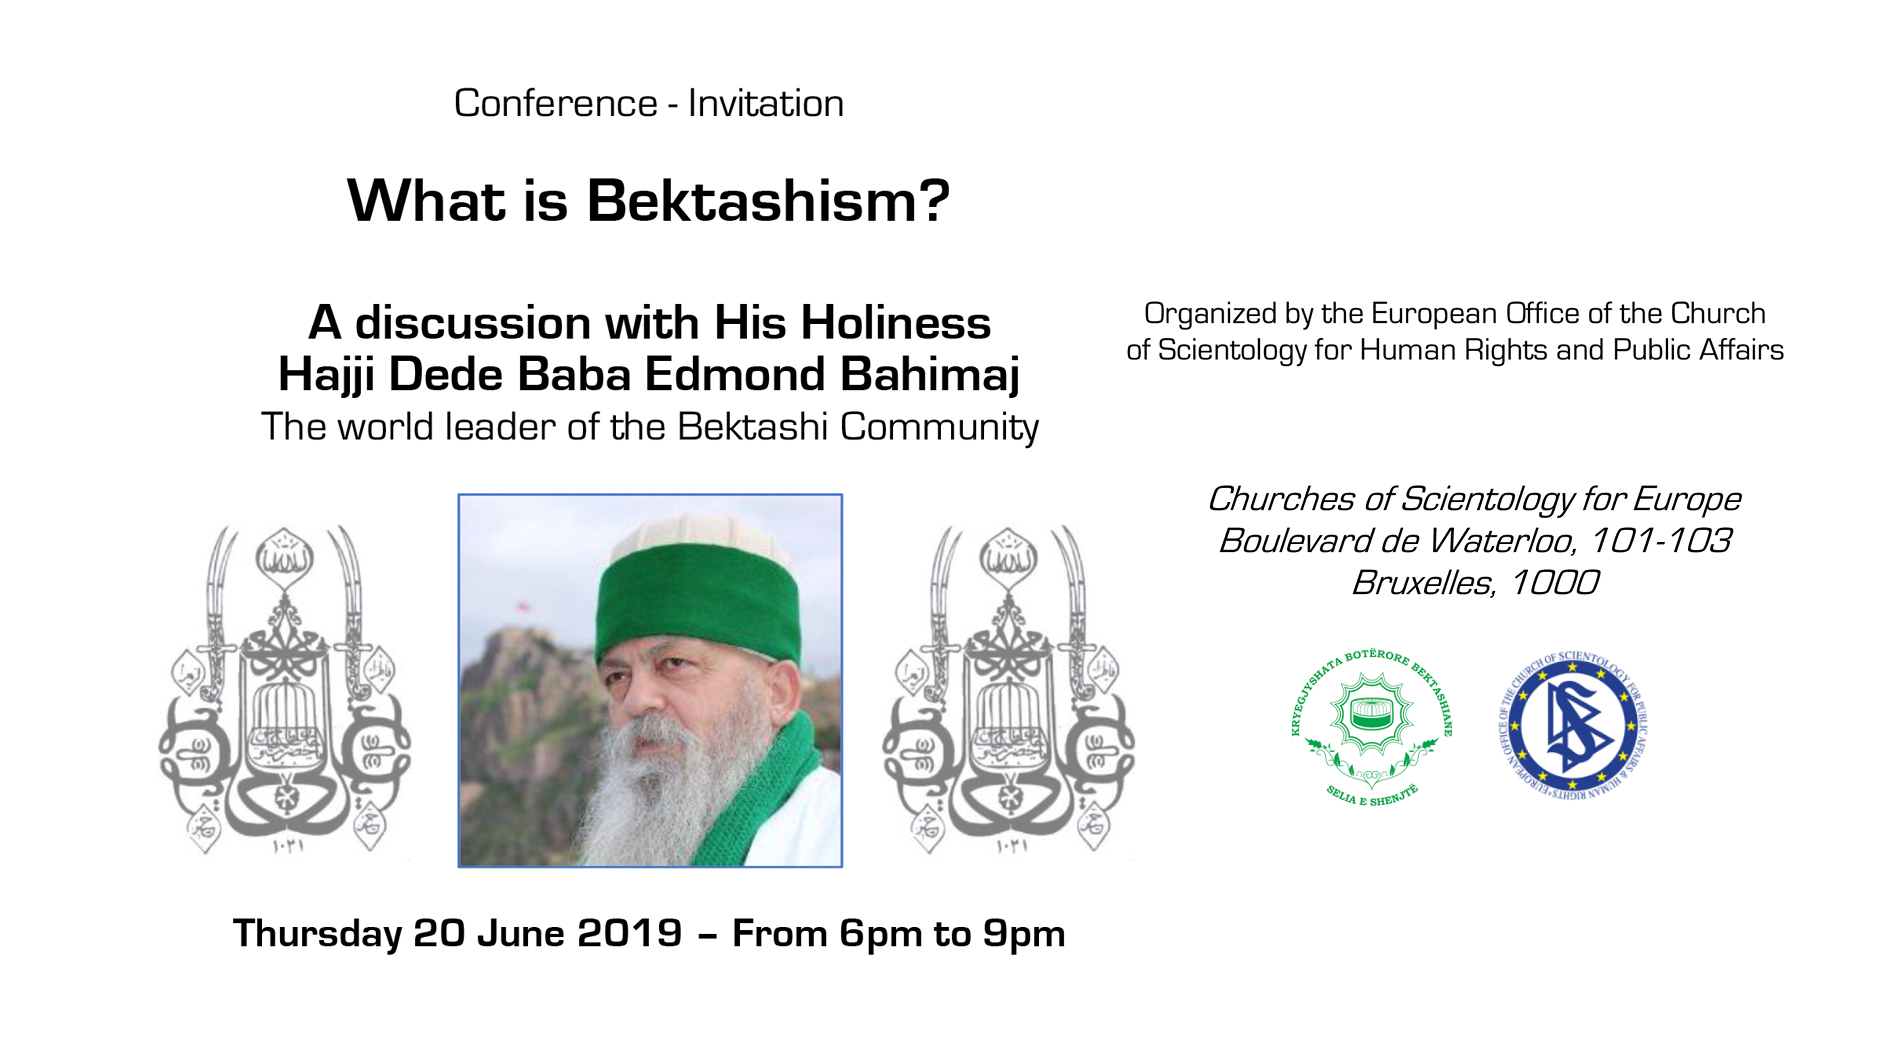 Conference: What is Bektashism? by His Holiness Hajji Dede Baba Edmond Bahimaj 🗓 🗺